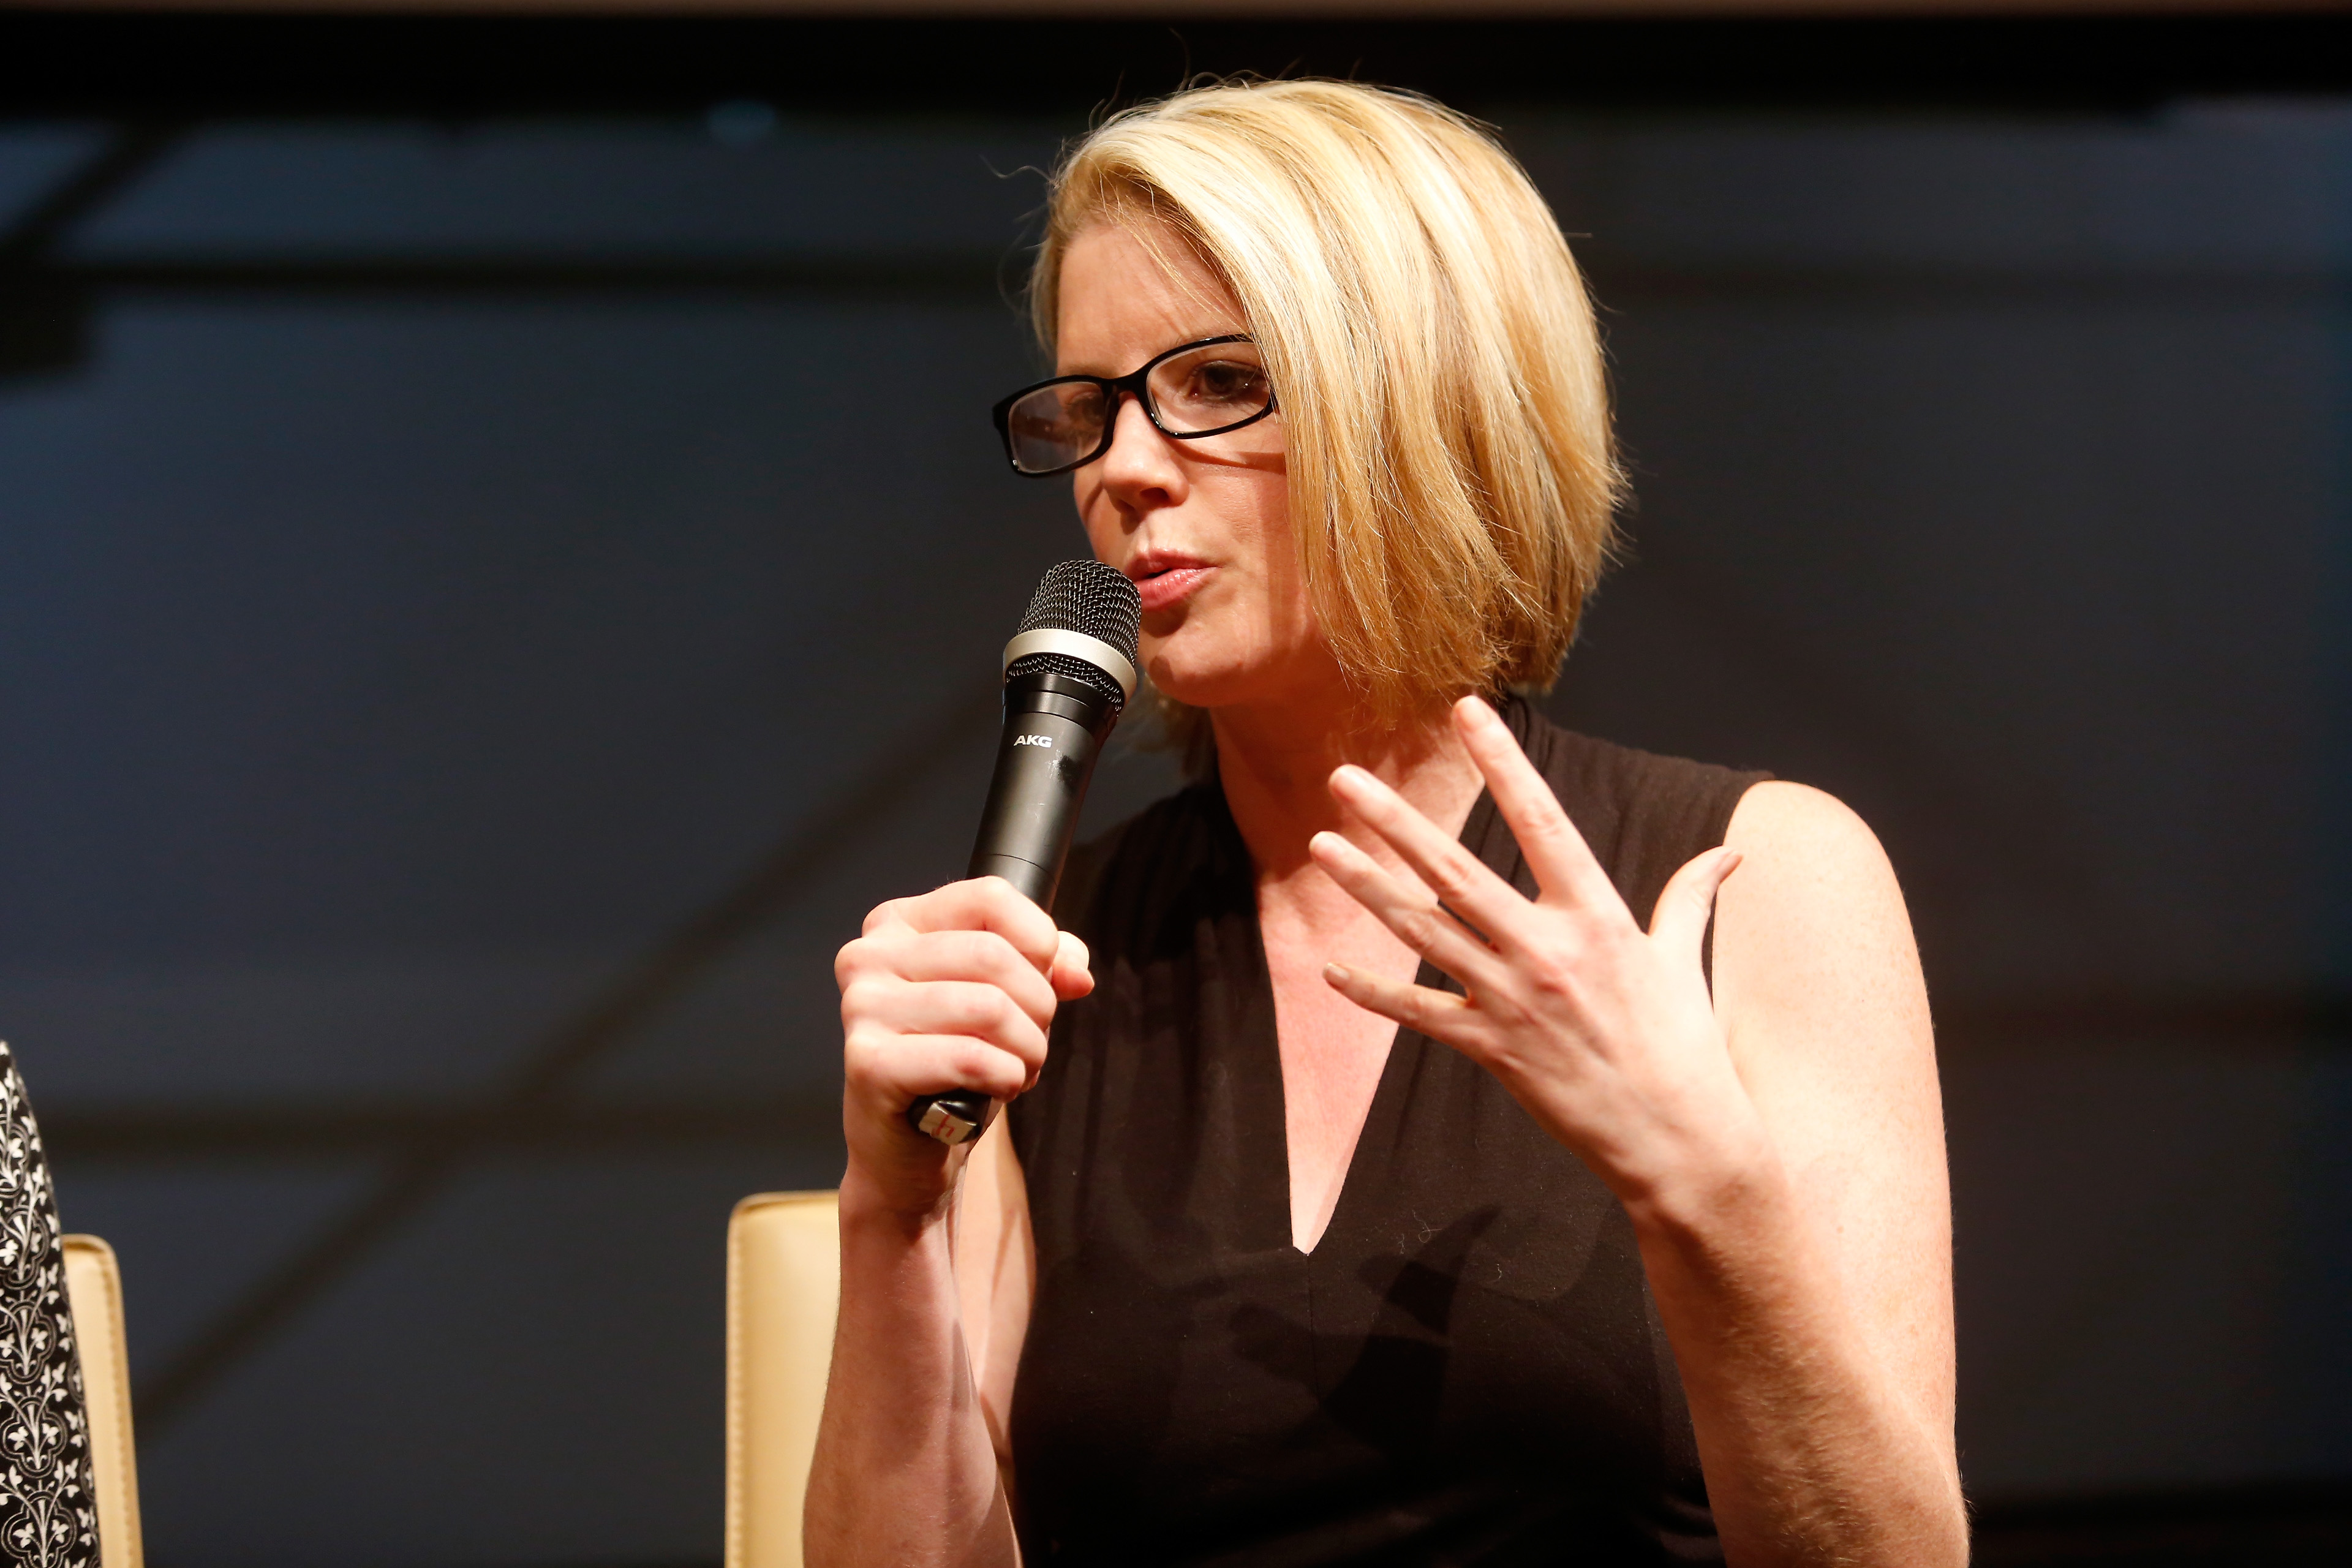 NEW YORK, NY - OCTOBER 27: Kirsten Powers speaks during NYT Mag Live: A Special Politics Edition at Neuehouse on October 27, 2016 in New York City. (Photo by Thos Robinson/Getty Images for New York Times)